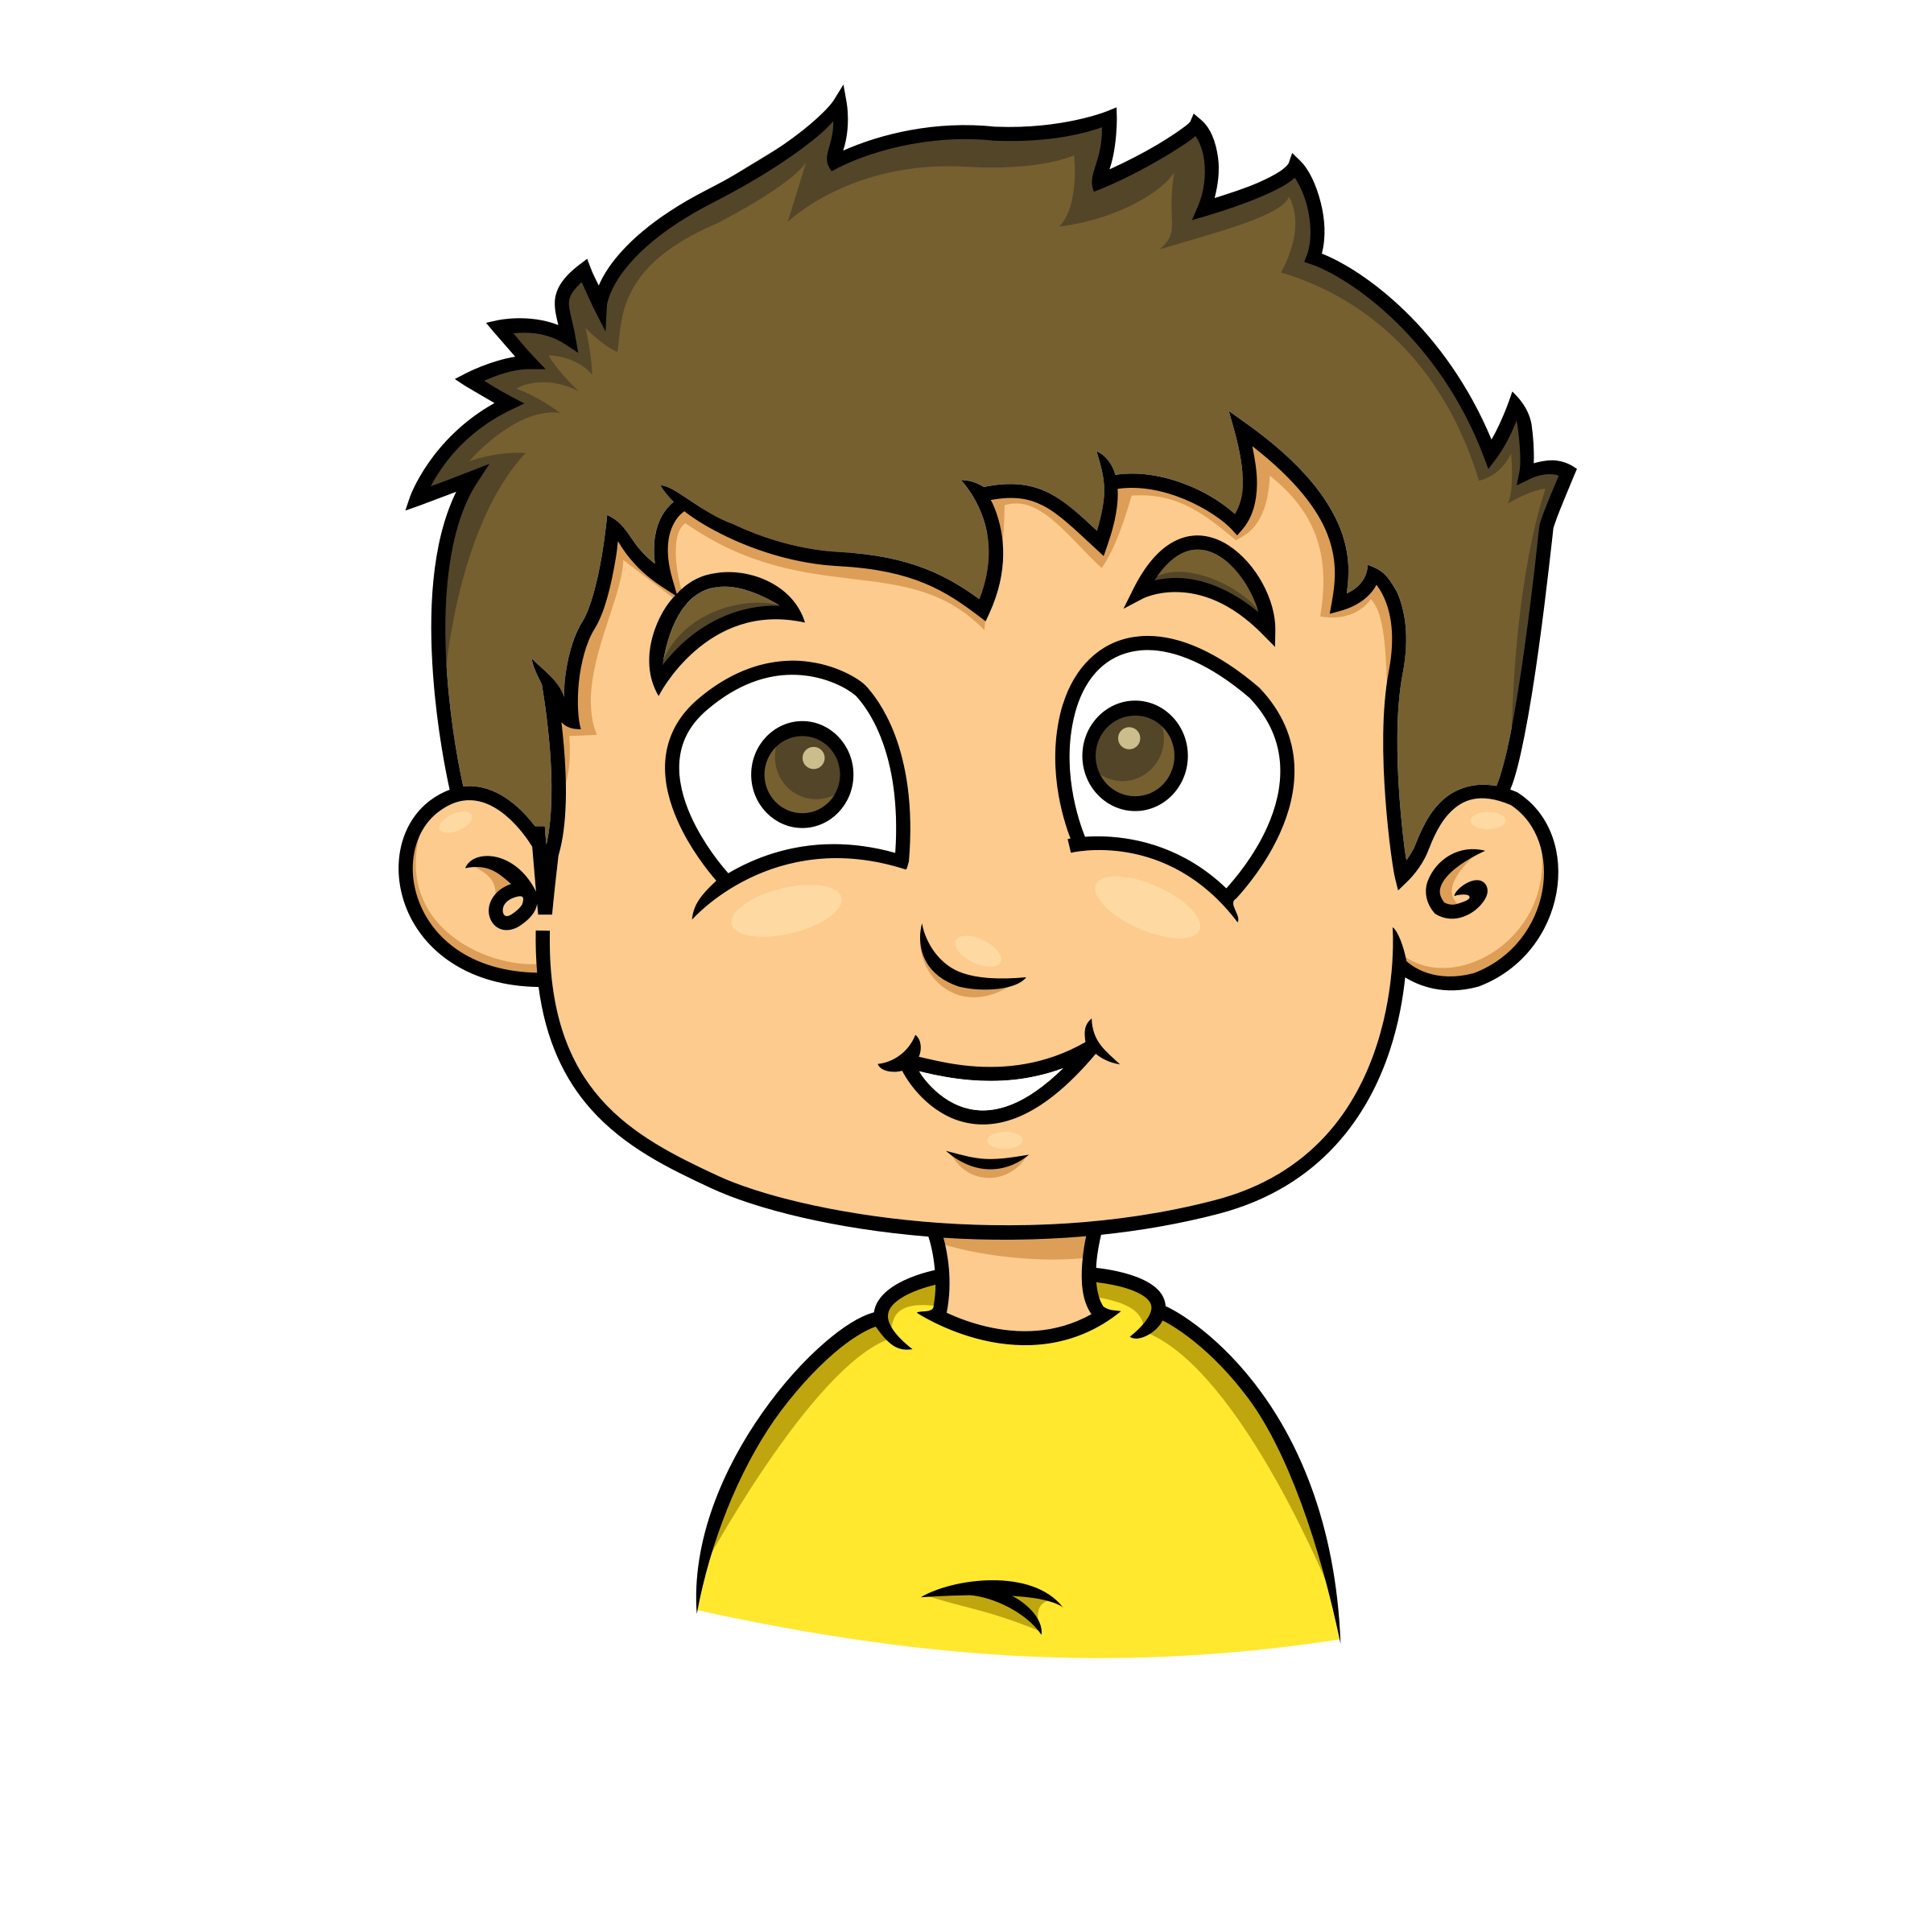 Chin clipart clip art. Smiling face of a